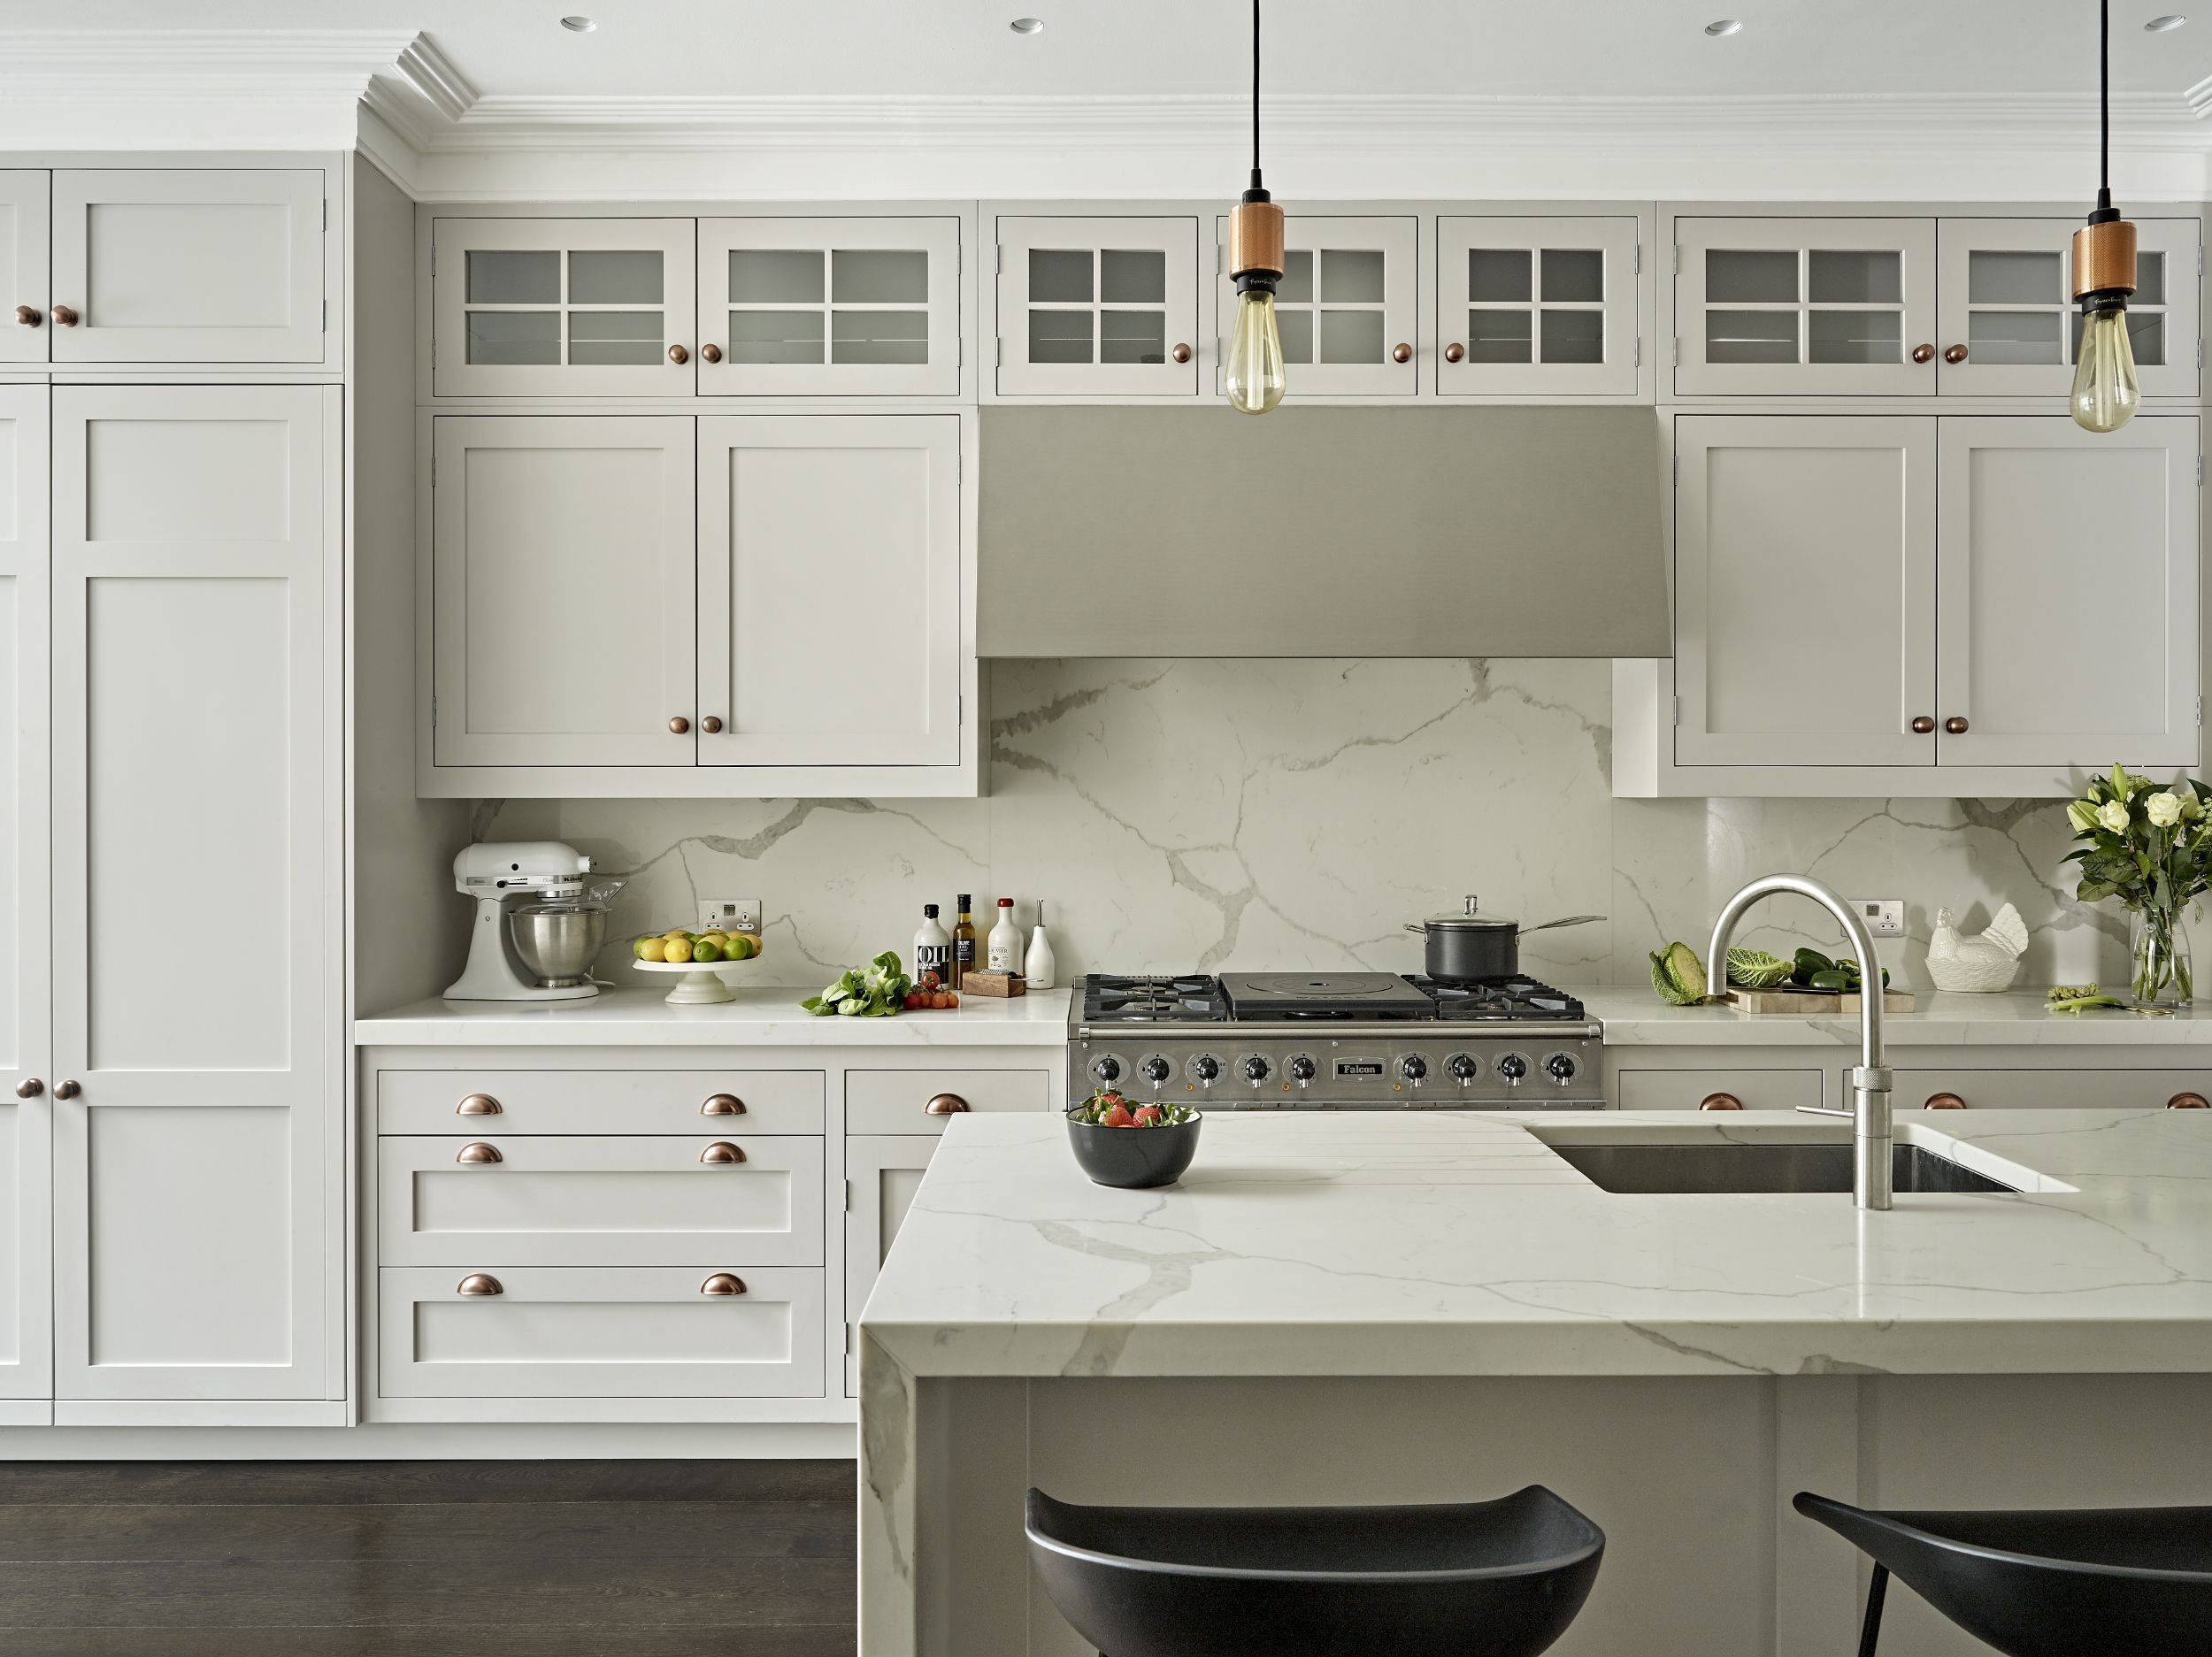 Putney Victorian House Kitchens By Brayer Design Traditional Kitchen Design Kitchen Design Kitchen Marble